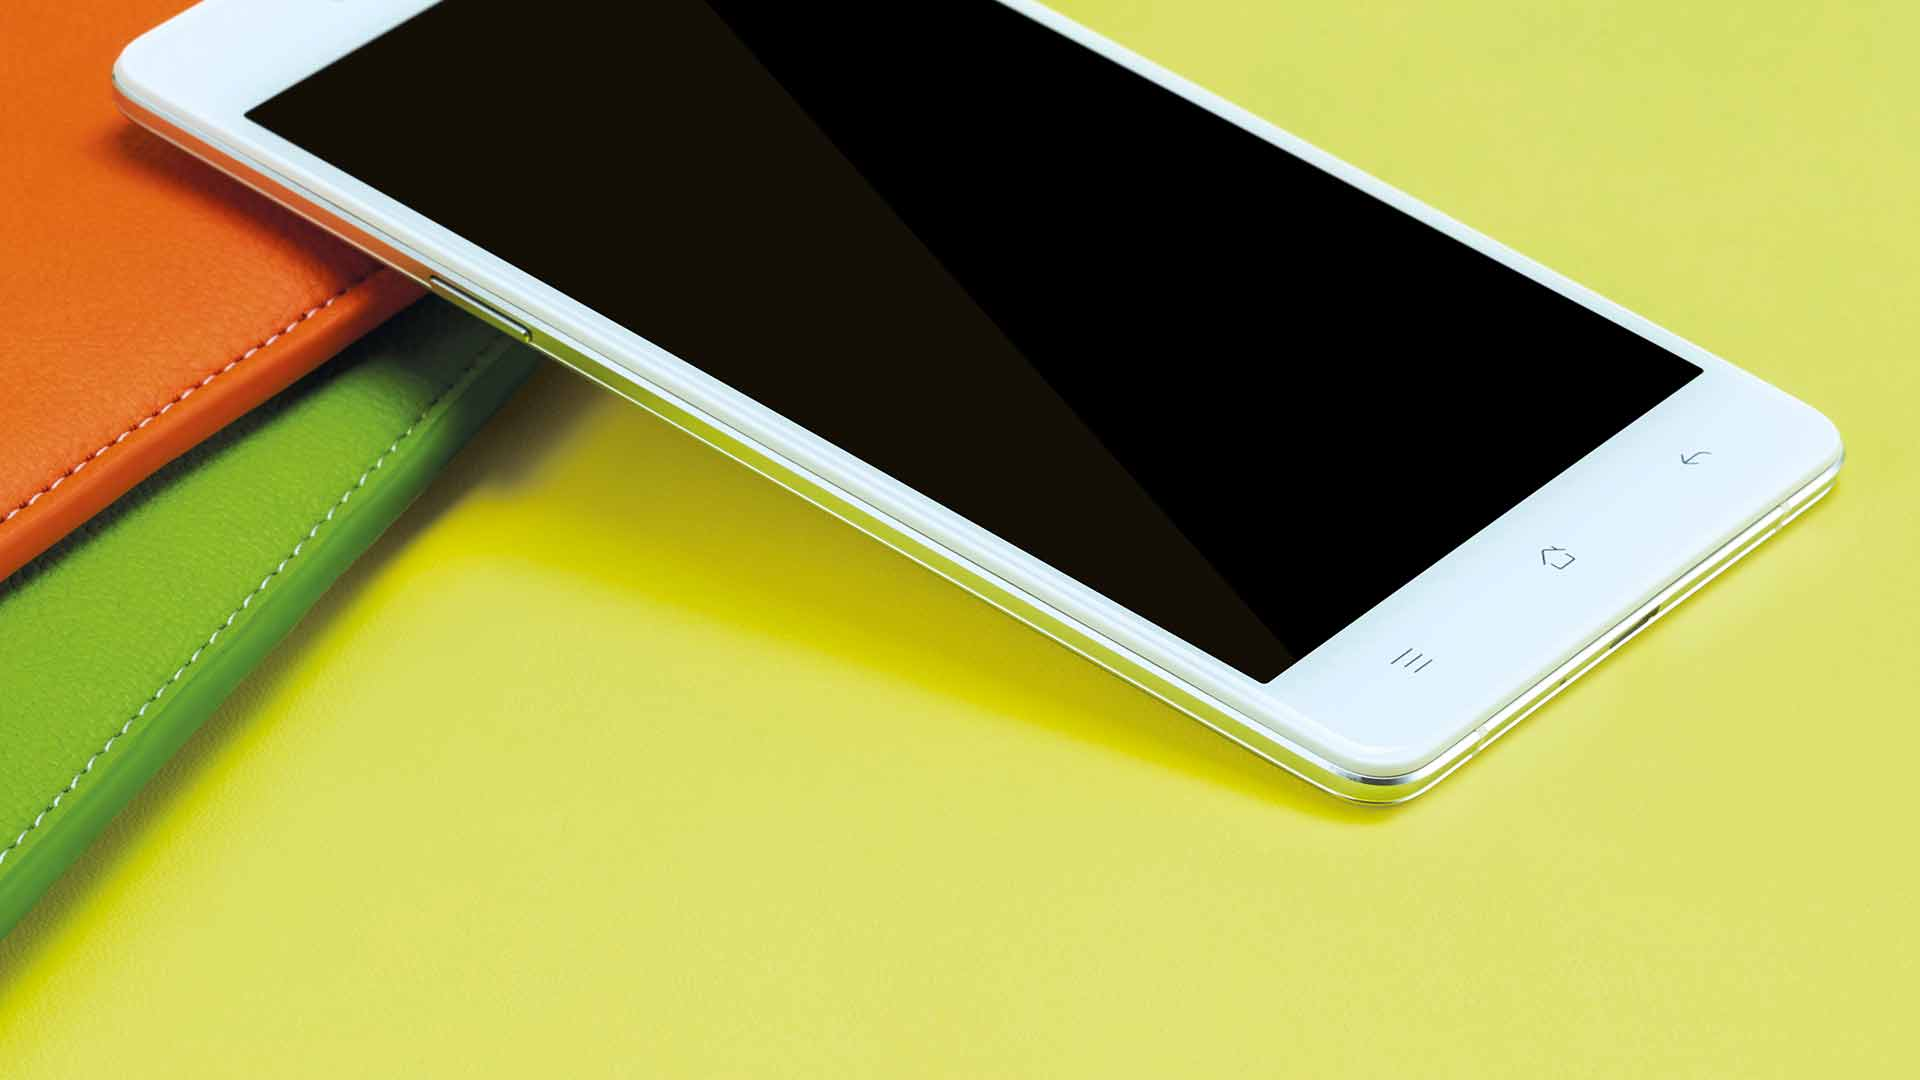 OPPO R7, PDAF, Dual SIM 4G, VOOC Flash Charge - OPPO Global